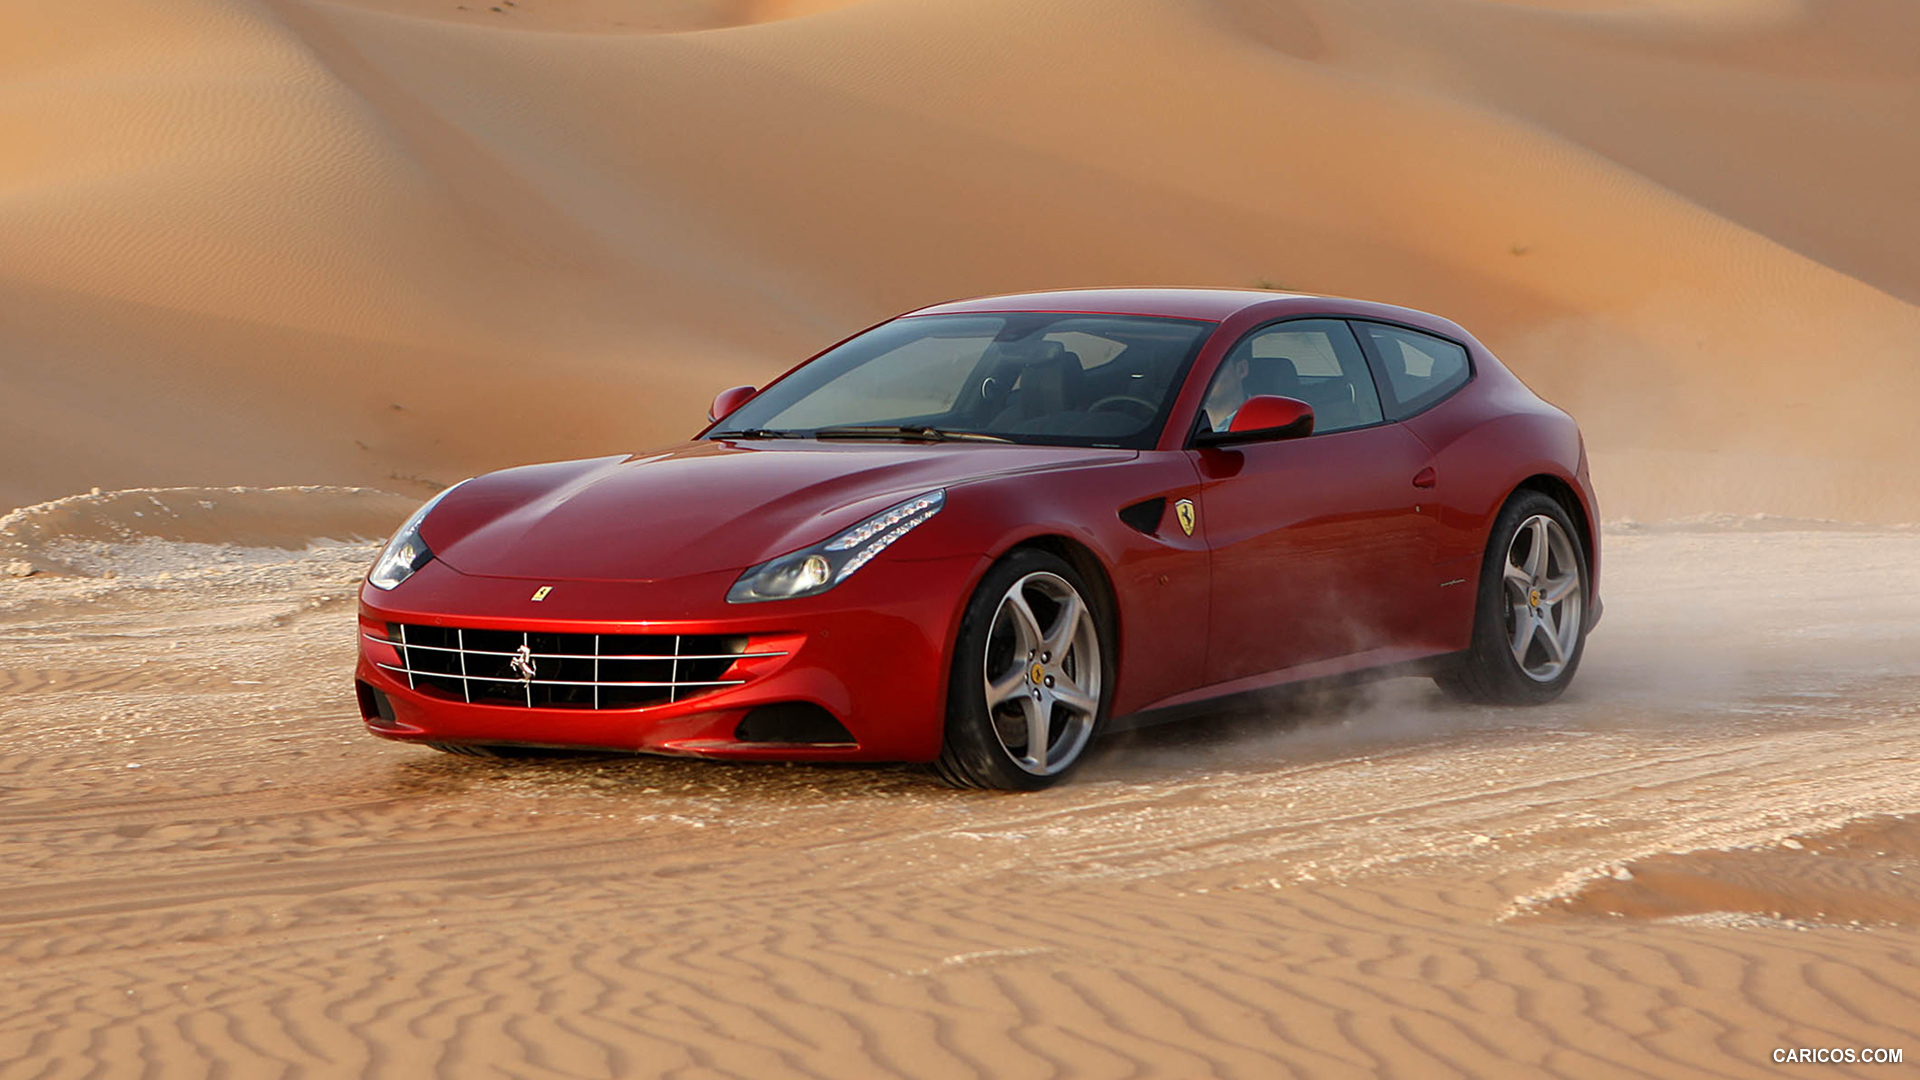 1920x1080 - Ferrari FF Wallpapers 24